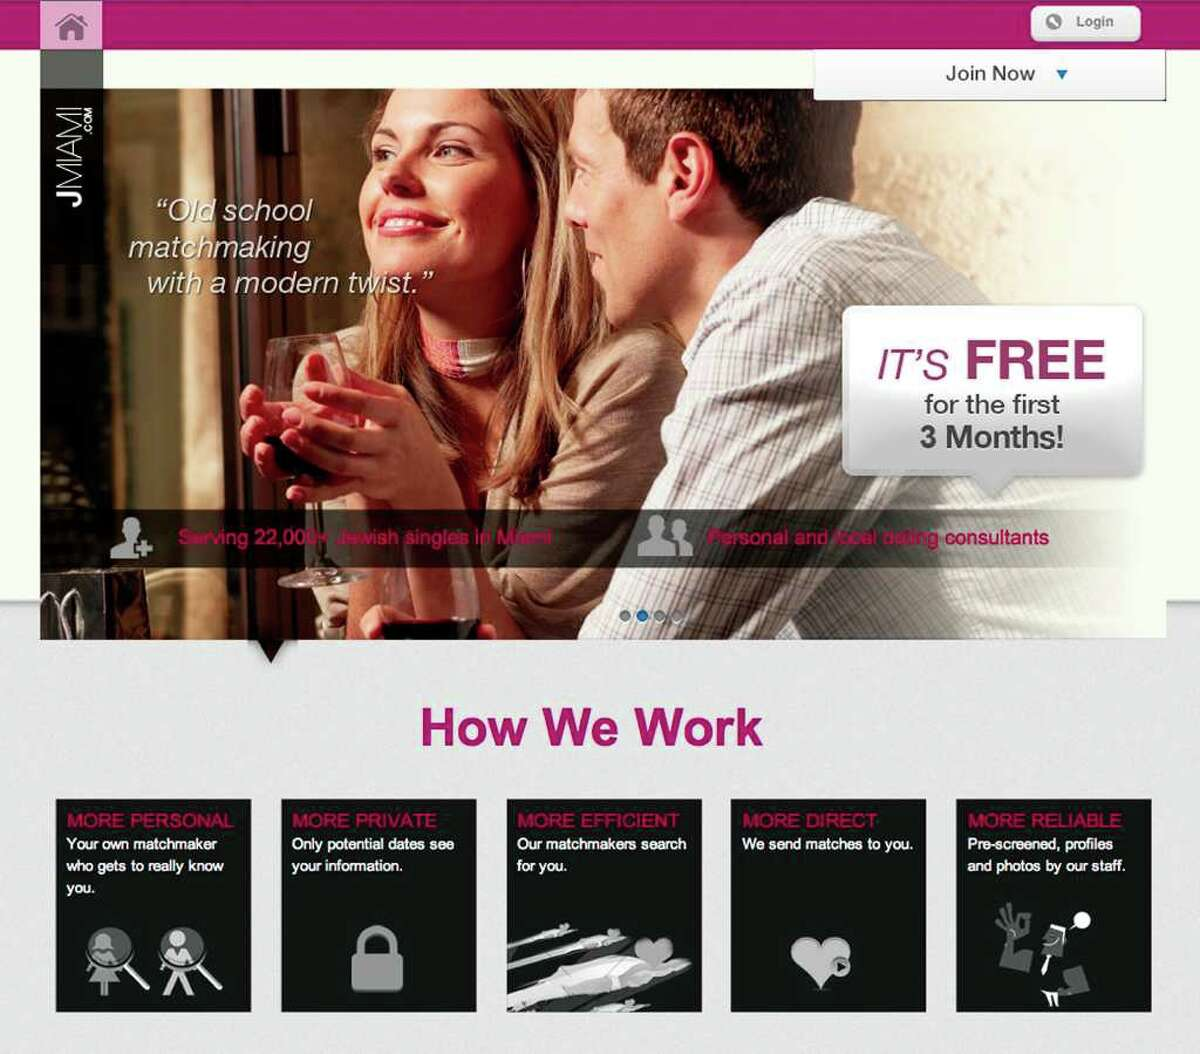 Jewish singles can use websites such as JMiami to find them a match.